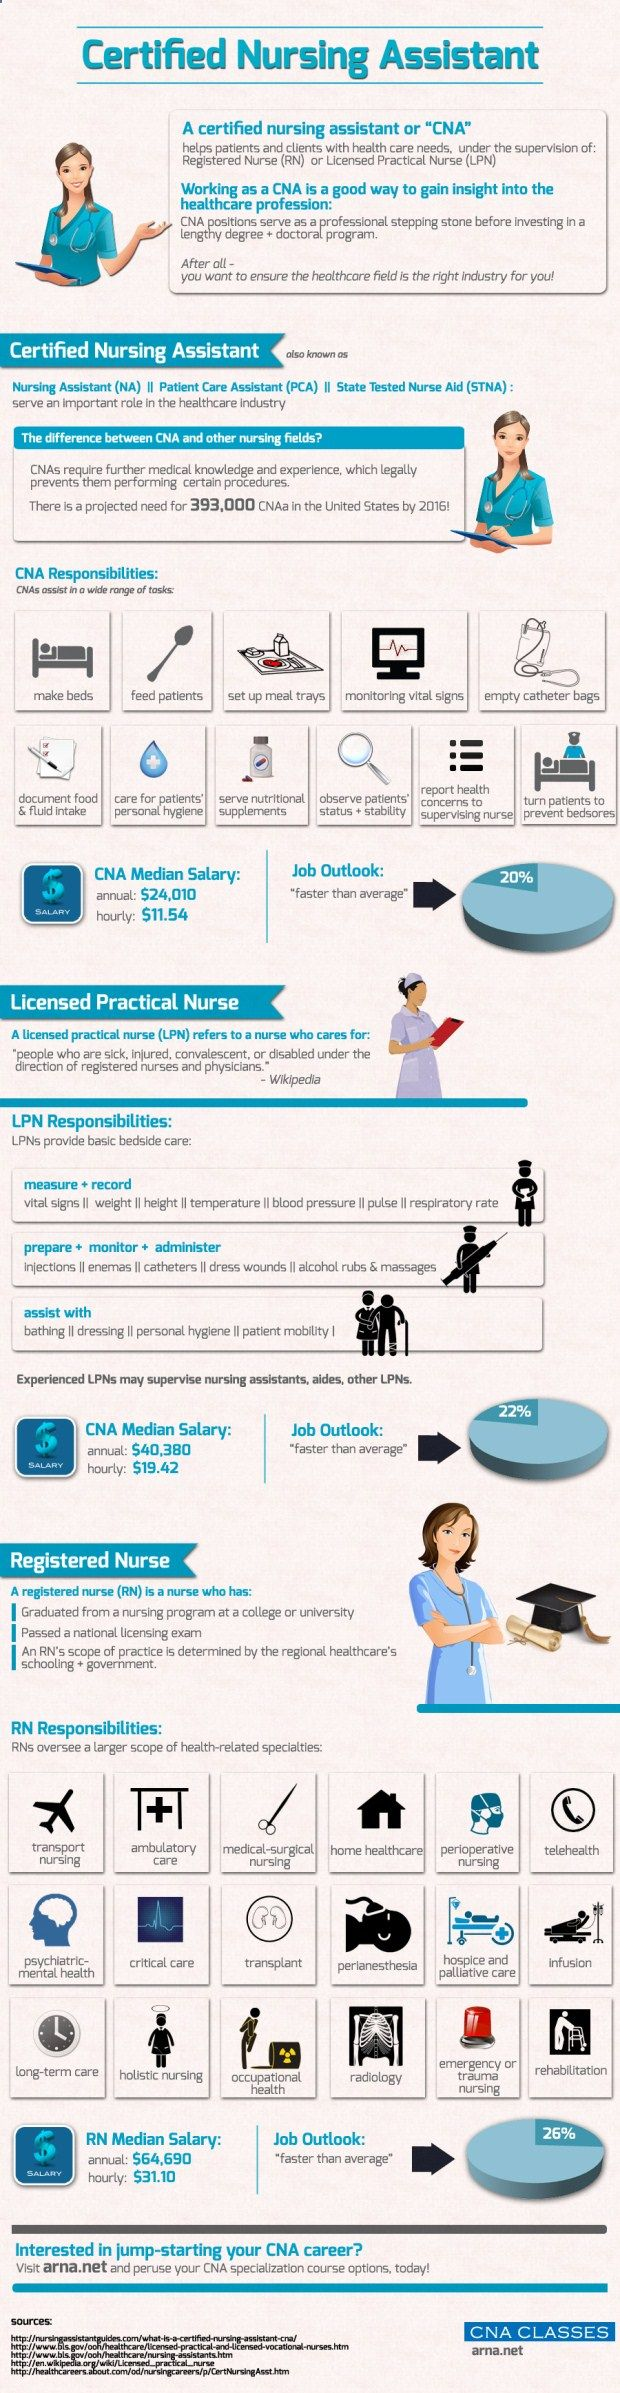 A Great Cna Certified Nursing Assistant Educational Infographic